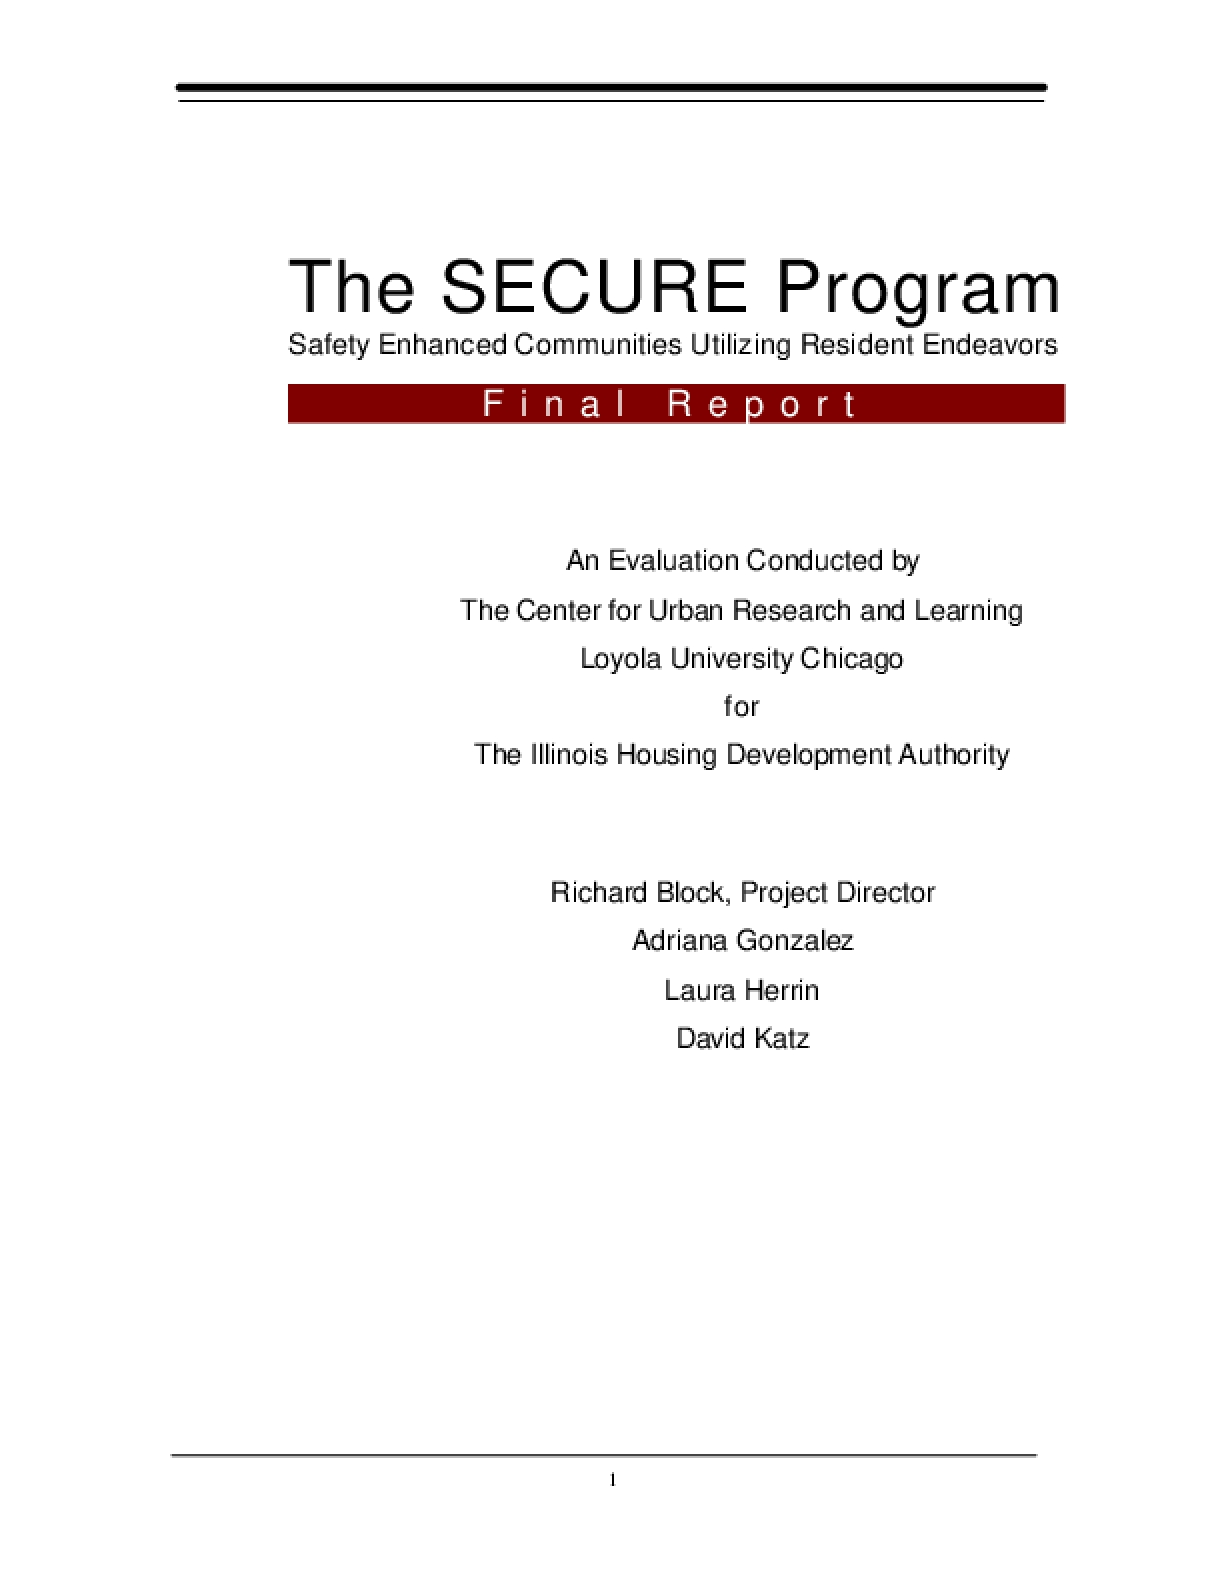 The SECURE Program: Safety Enhanced Communities Utilizing Resident Endeavors